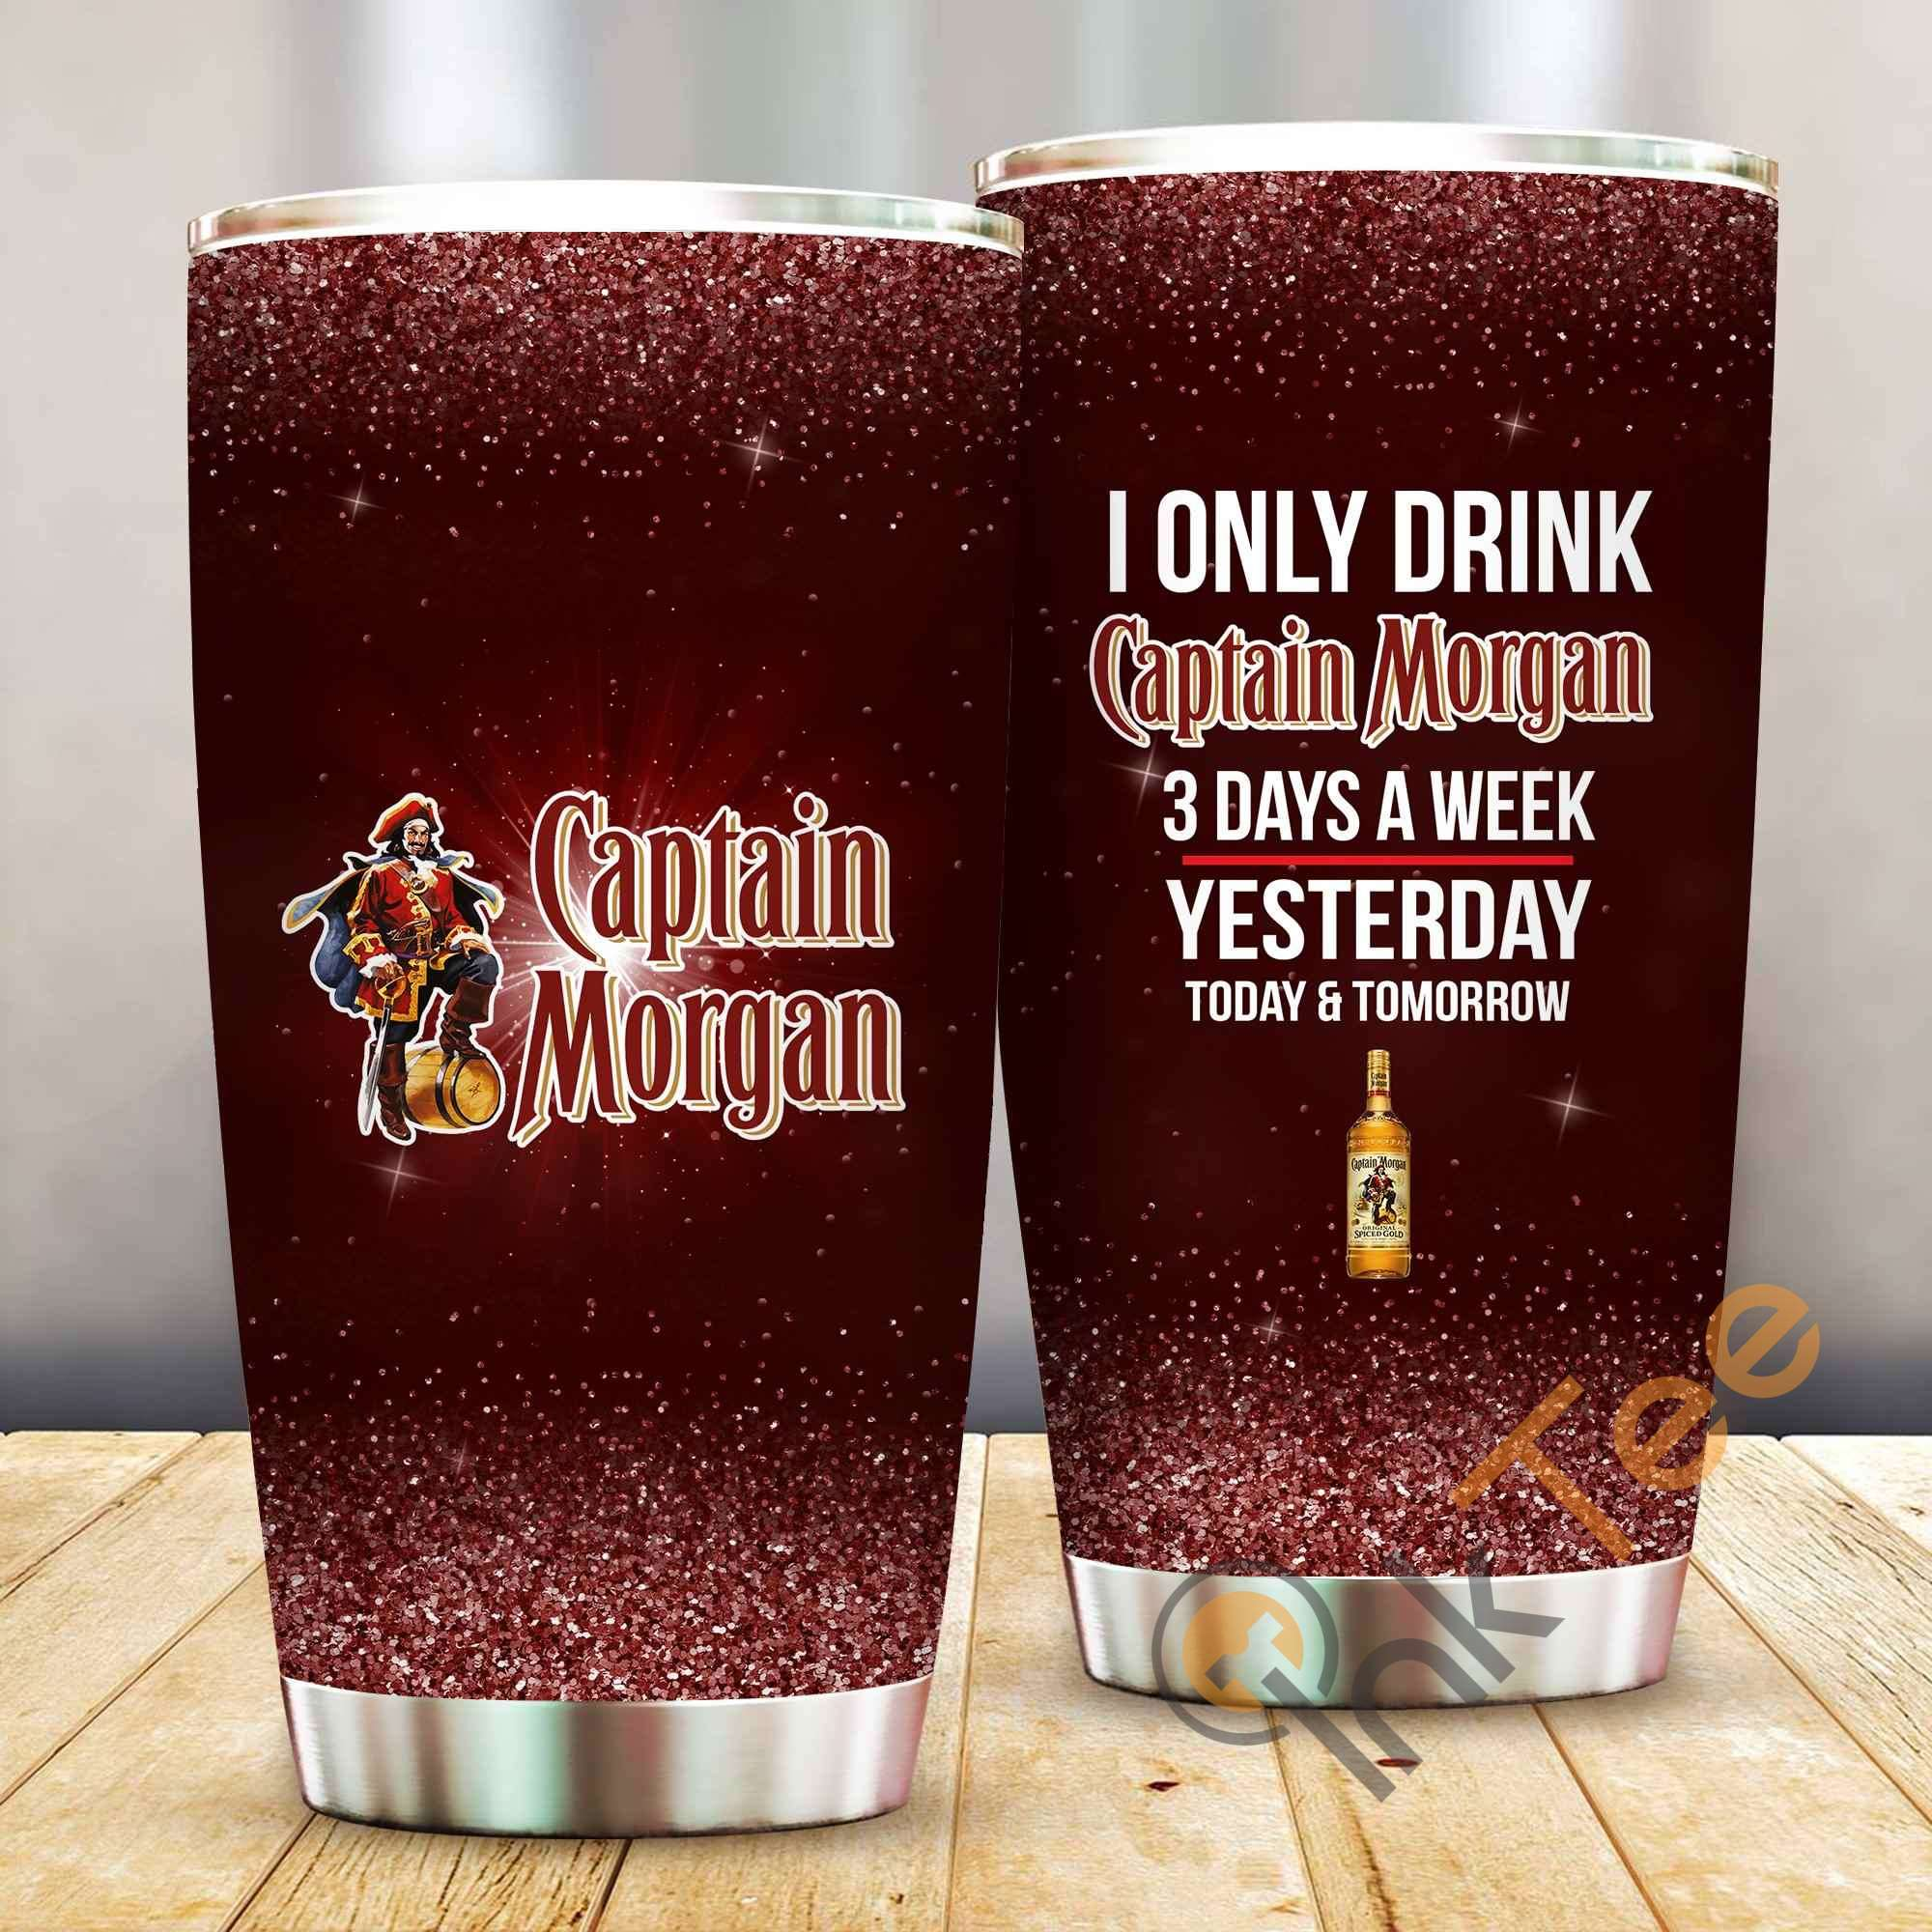 I Only Drink Captain Morgan 3 Days A Week Amazon Best Seller Sku 3955 Stainless Steel Tumbler